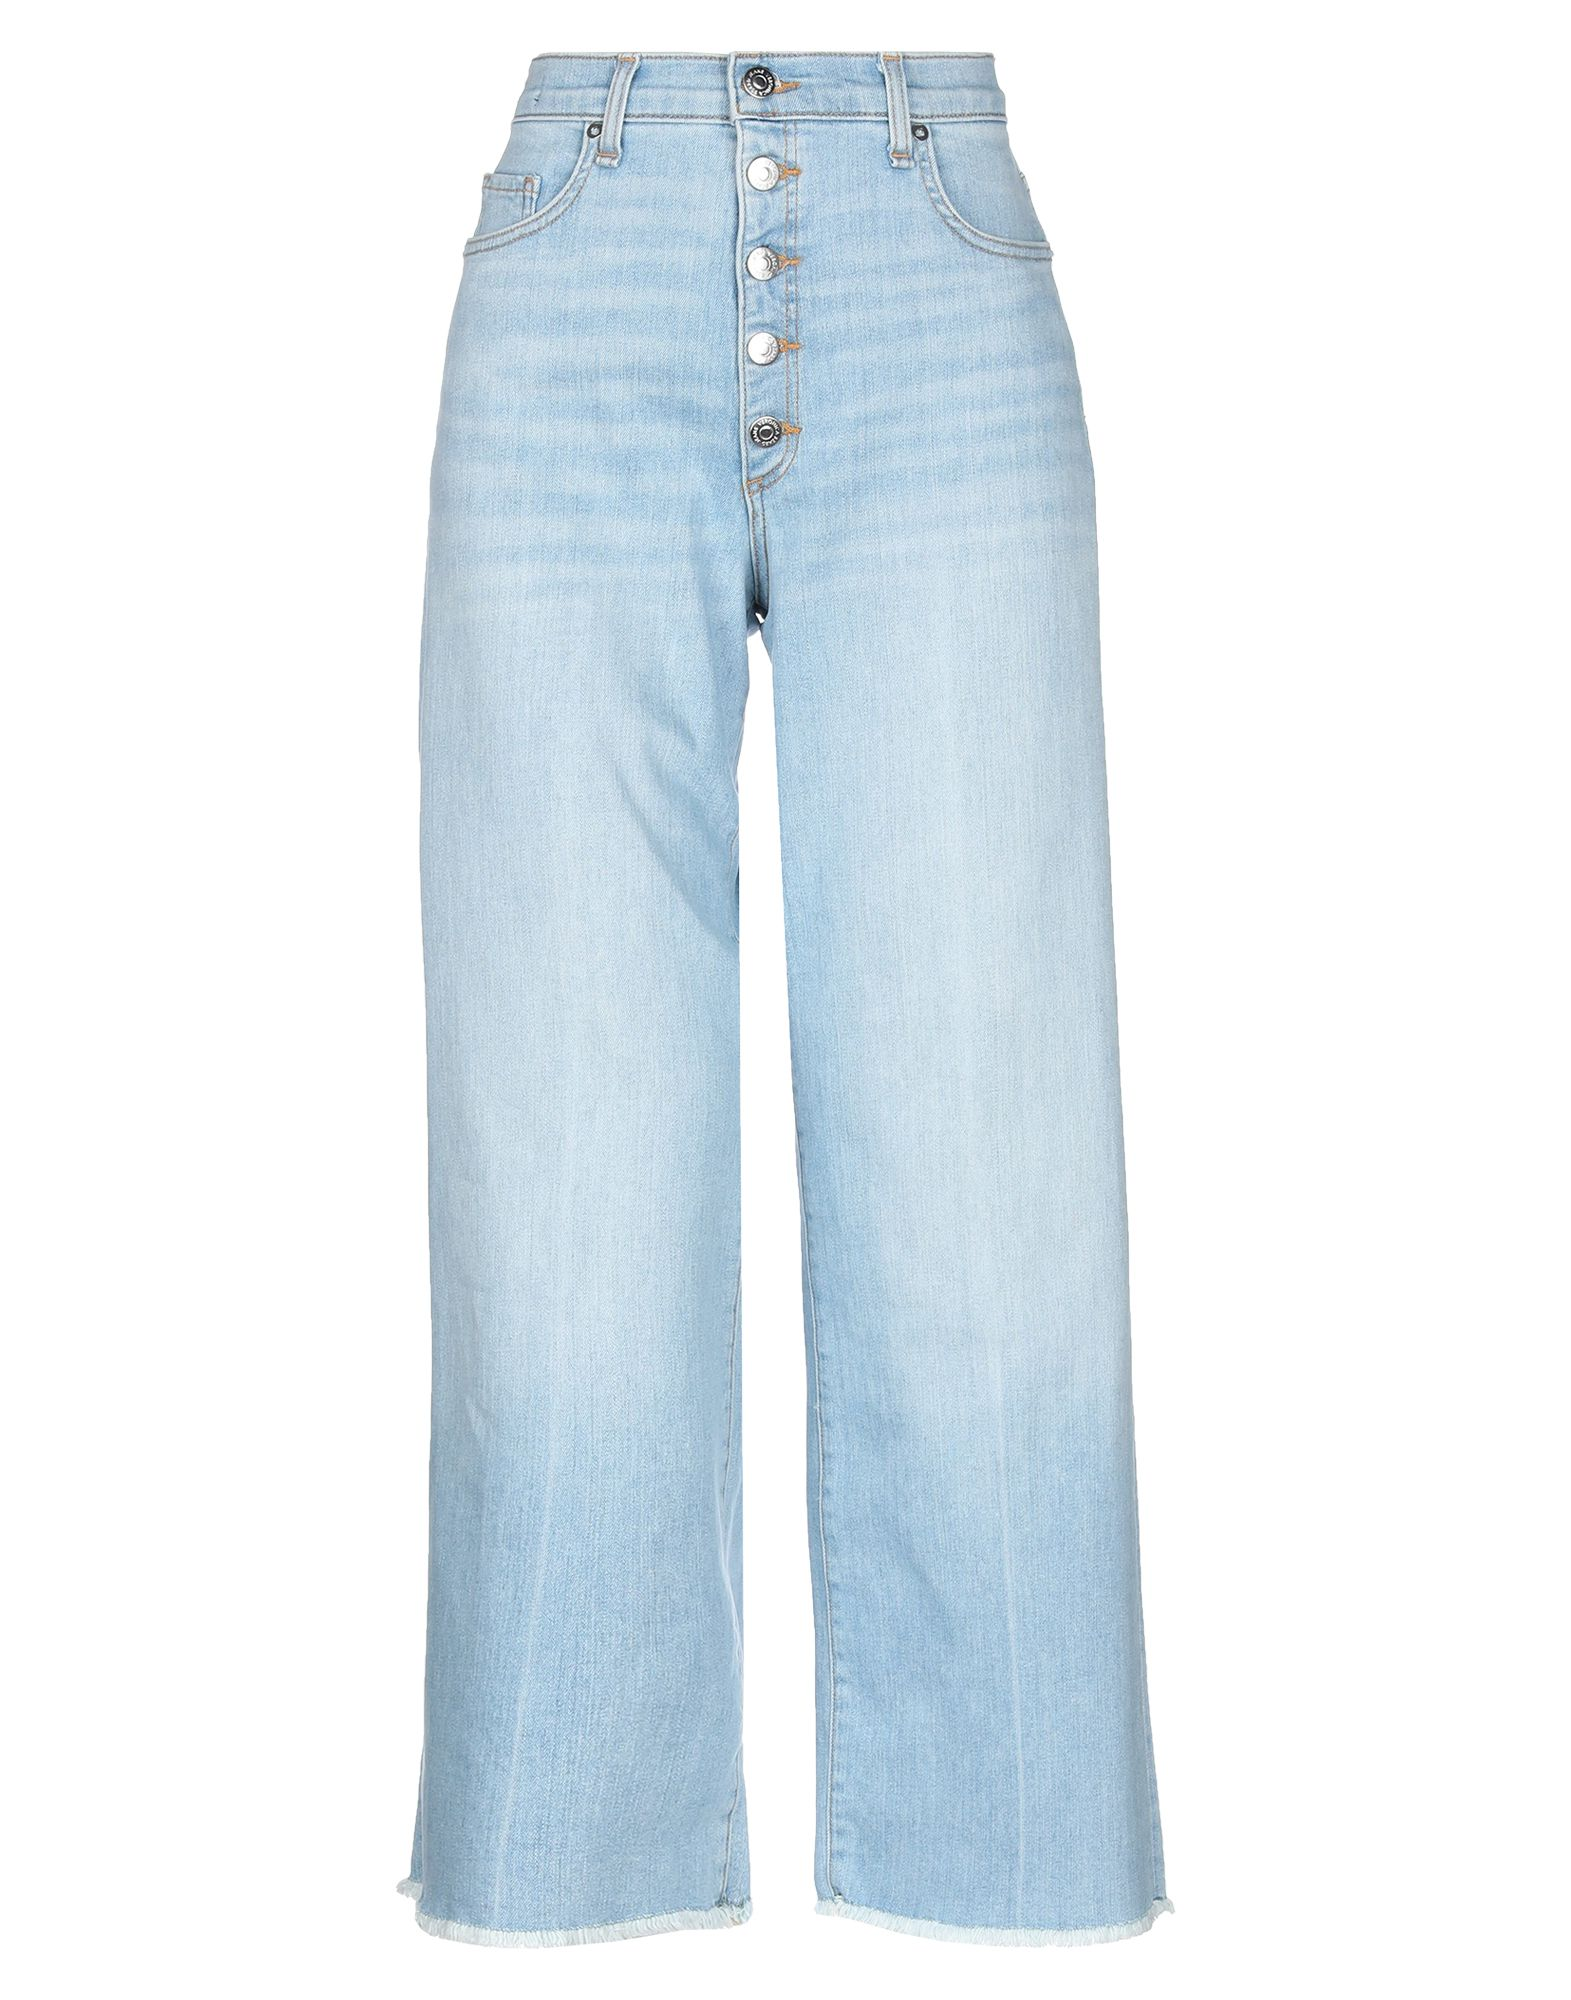 VERONICA BEARD Jeans. denim, faded, no appliqués, solid color, light wash, high waisted, front closure, button closing, multipockets, fringed hem, stretch. 92% Cotton, 6% Elastomultiester, 2% Elastane